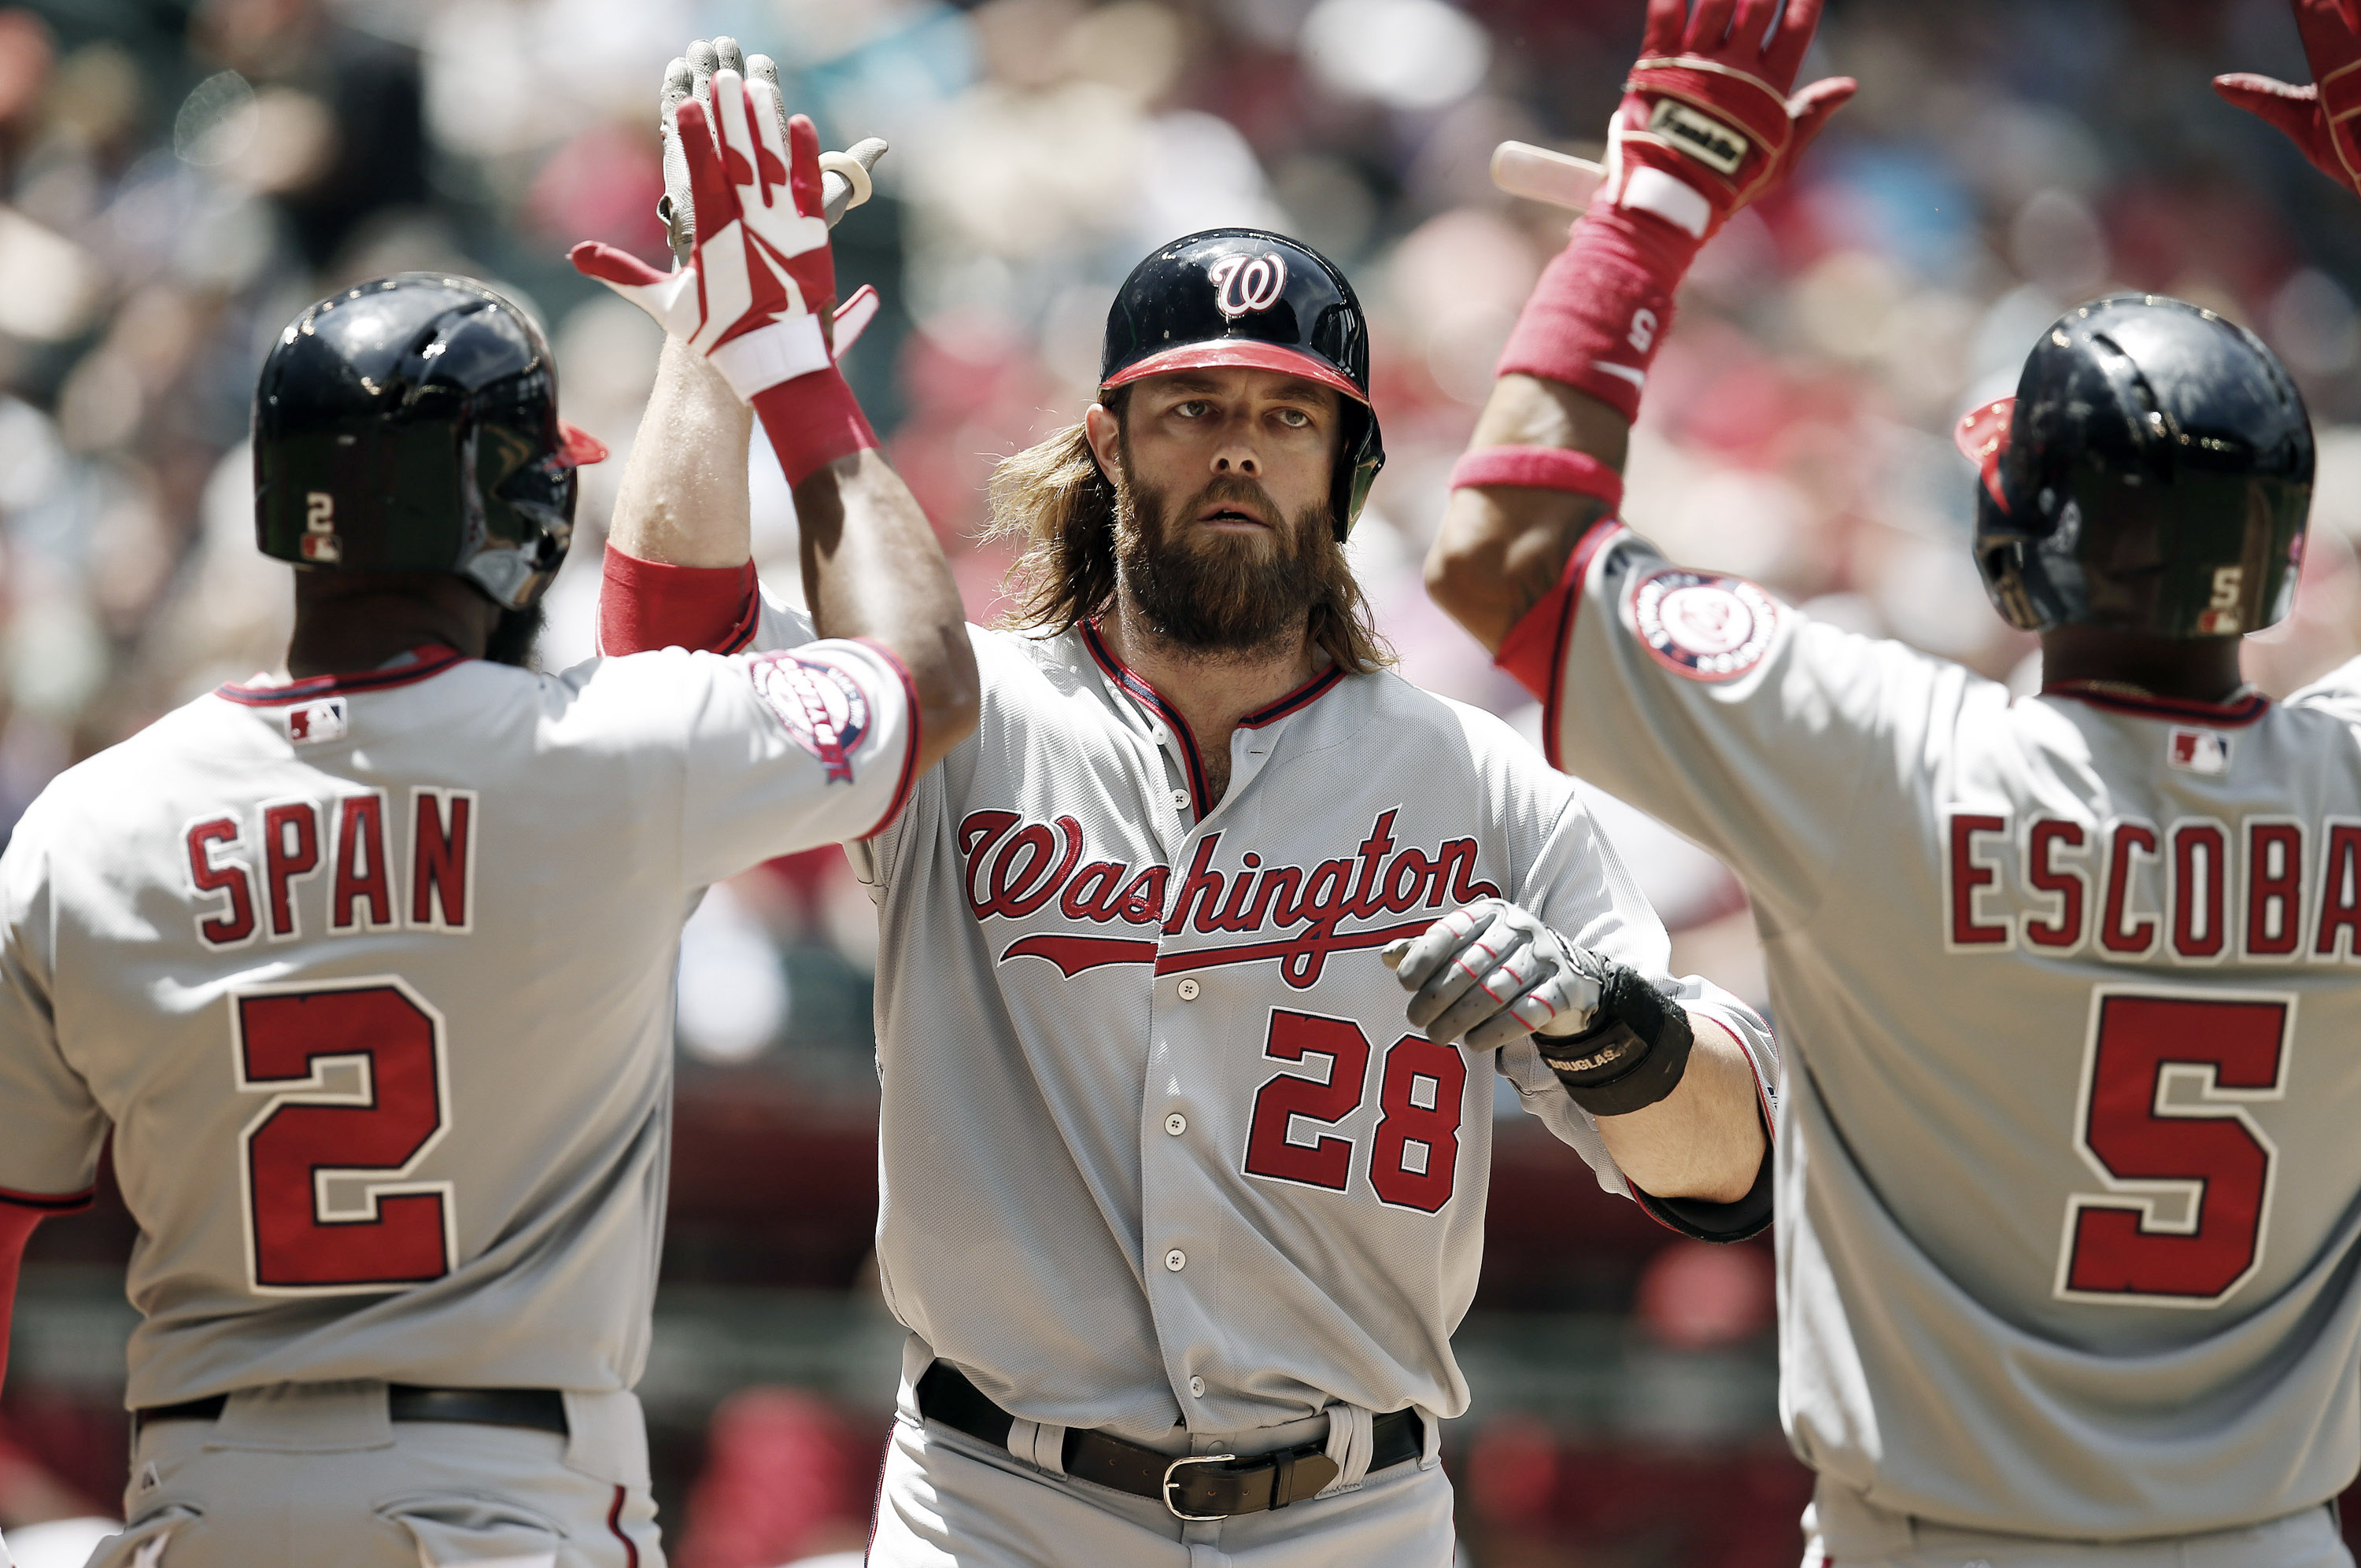 Werth to be added to Nats Ring of Honor